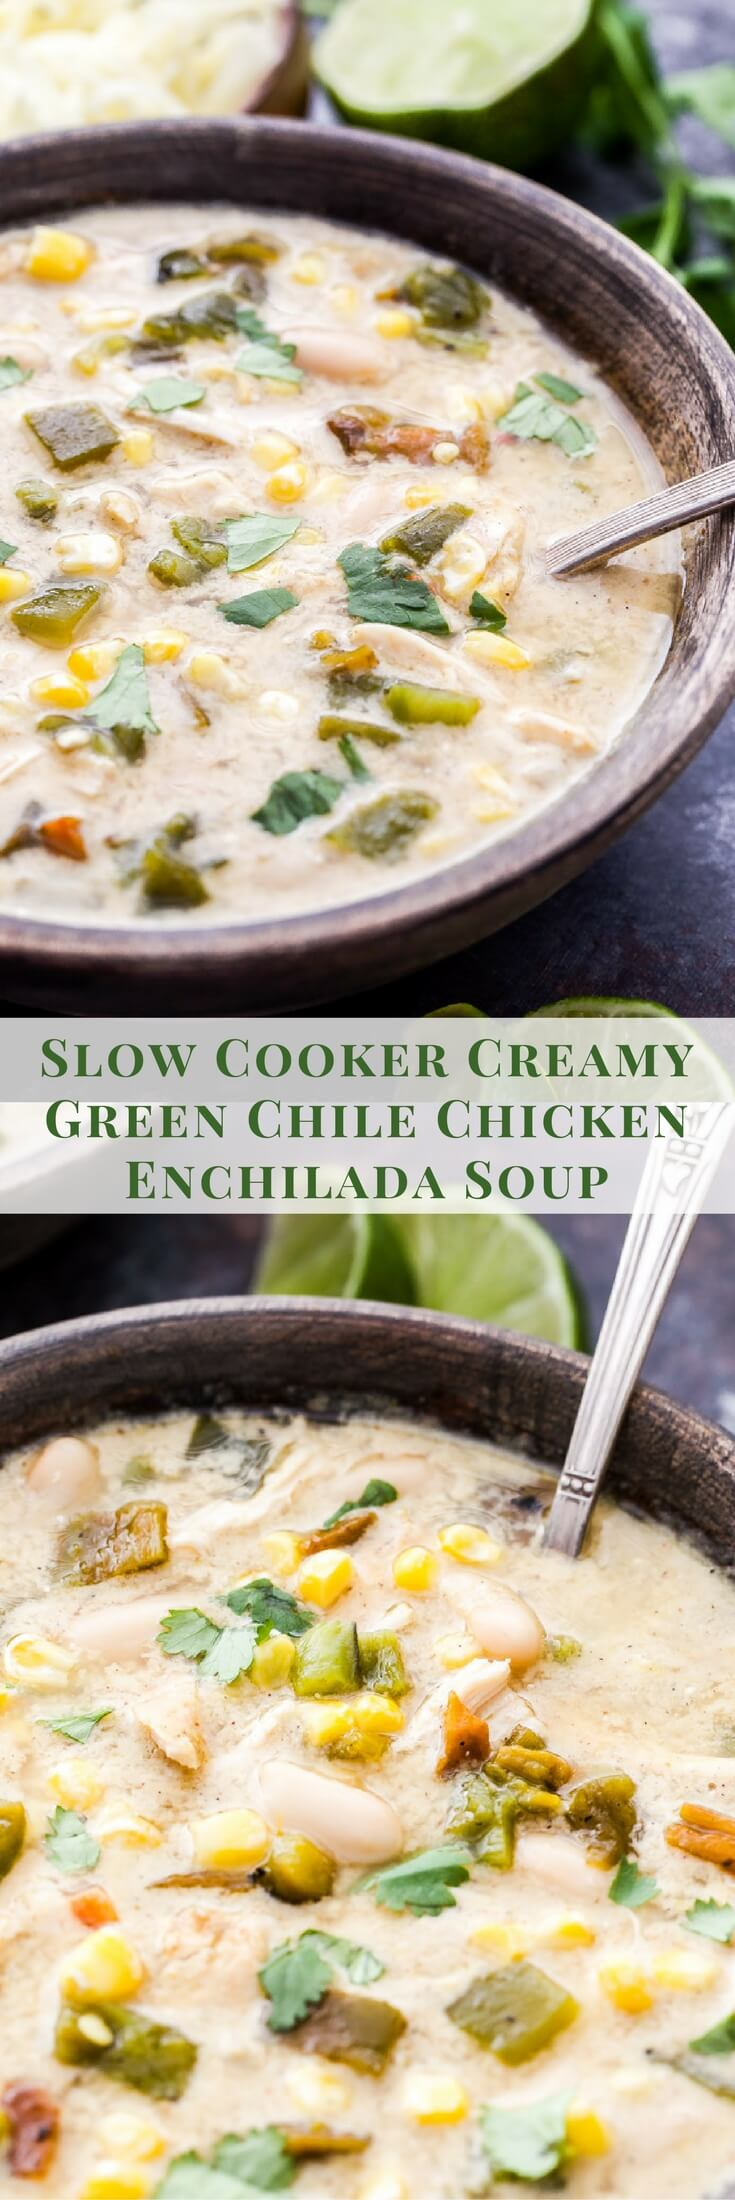 Slow Cooker Creamy Green Chile Chicken Enchilada Soup ...